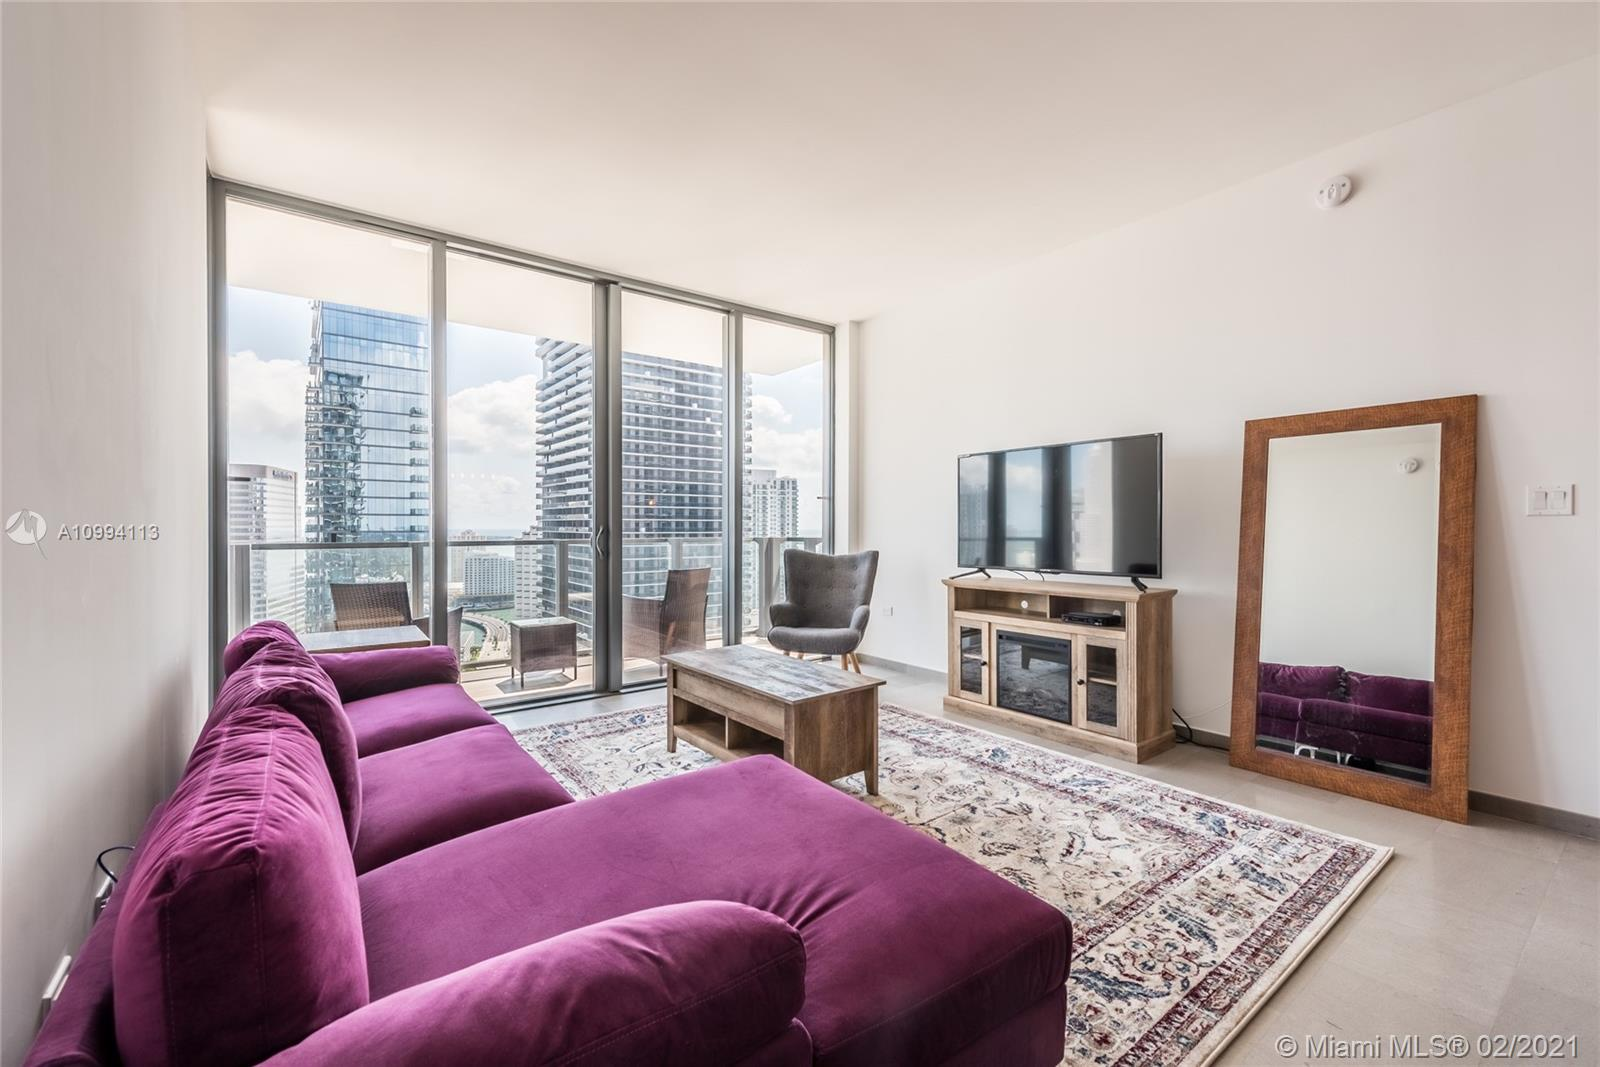 Rise Brickell City Centre #2903 - 88 SW 7 Street #2903, Miami, FL 33130